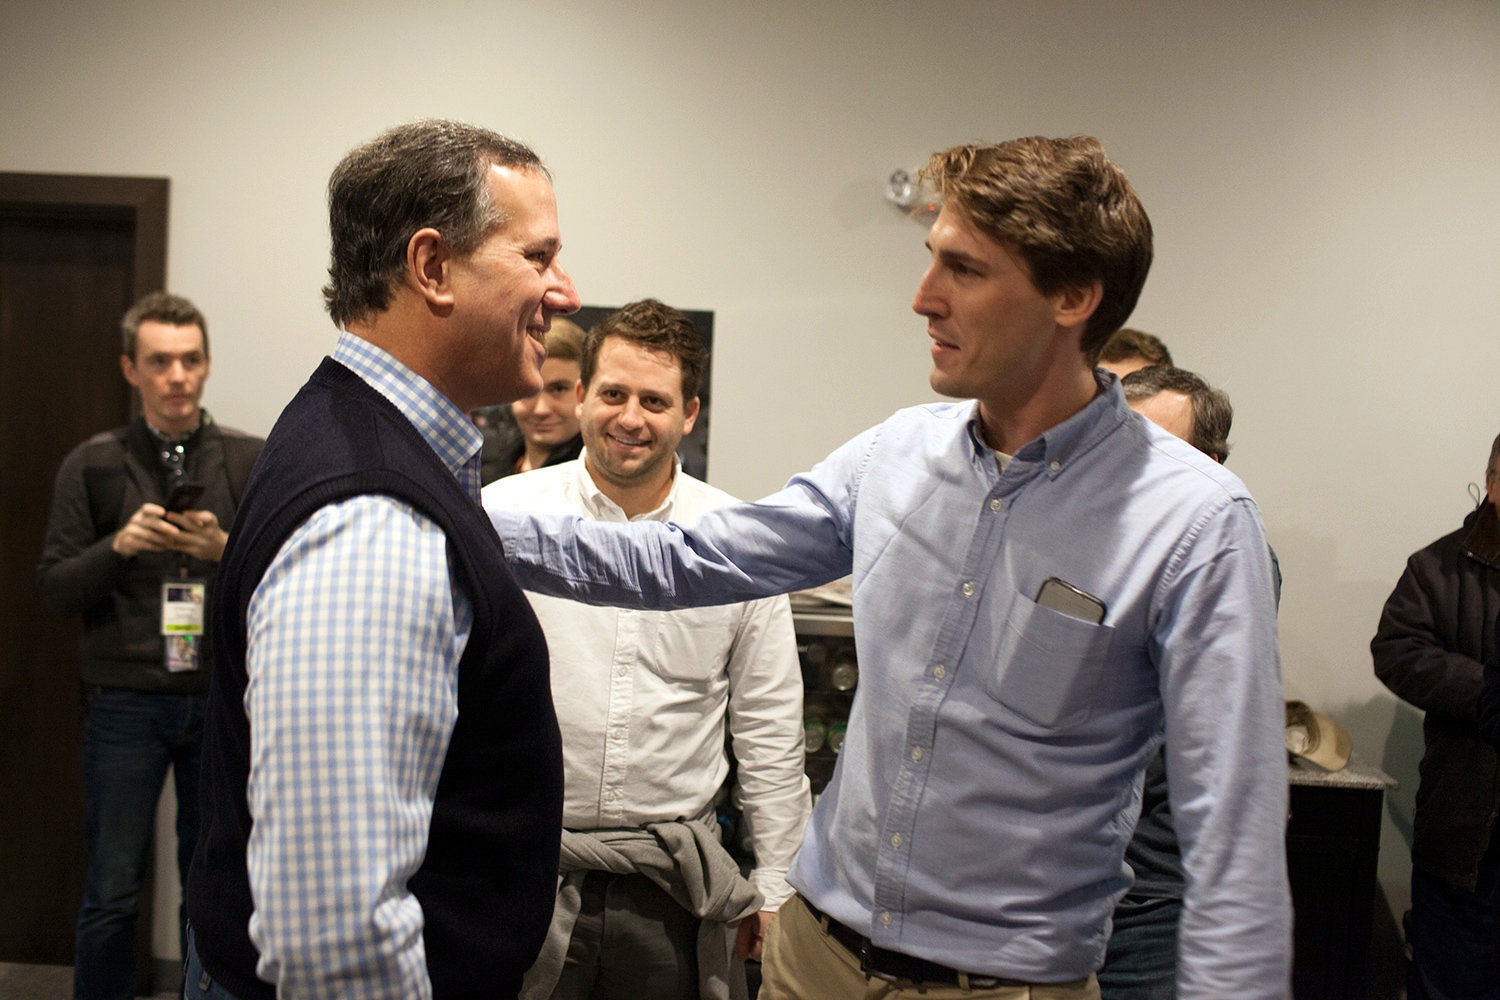 The Good Liars with Rick Santorum